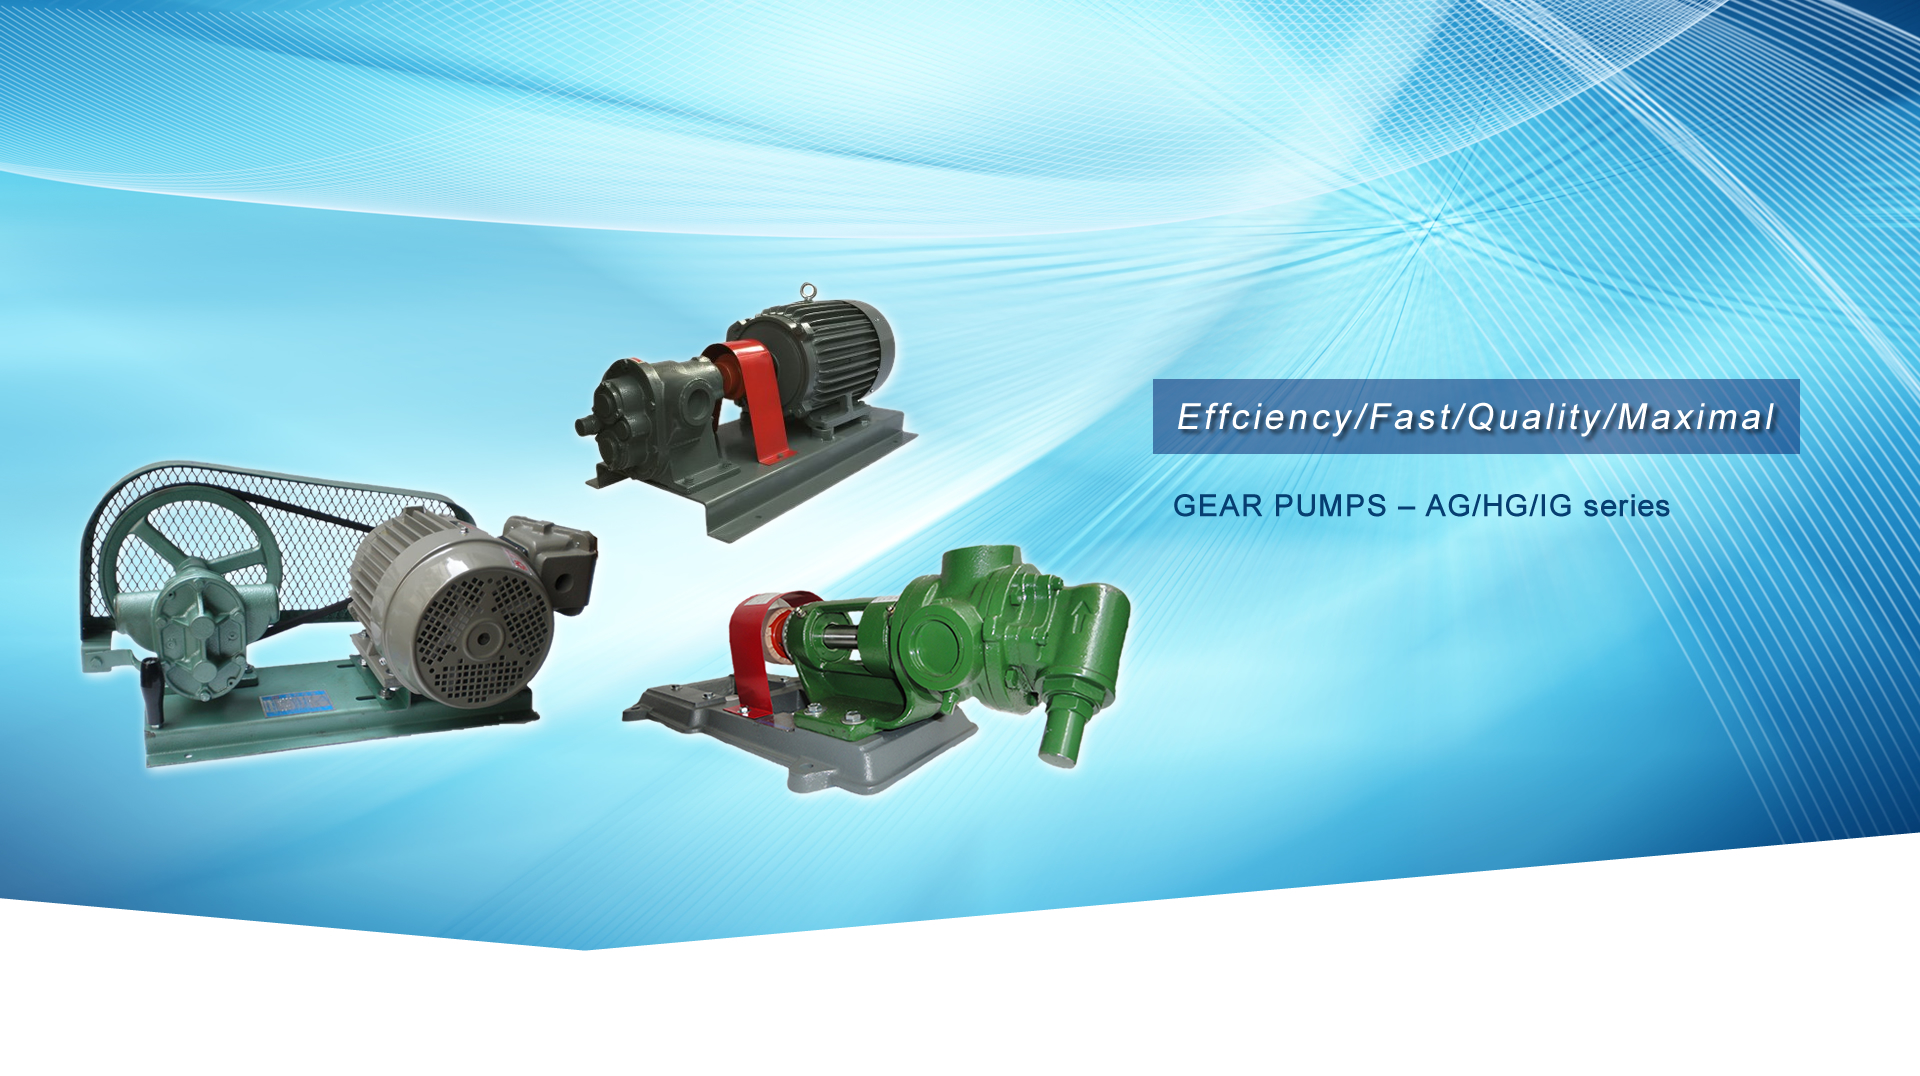 GEAR PUMPS – AG/HG/IG series